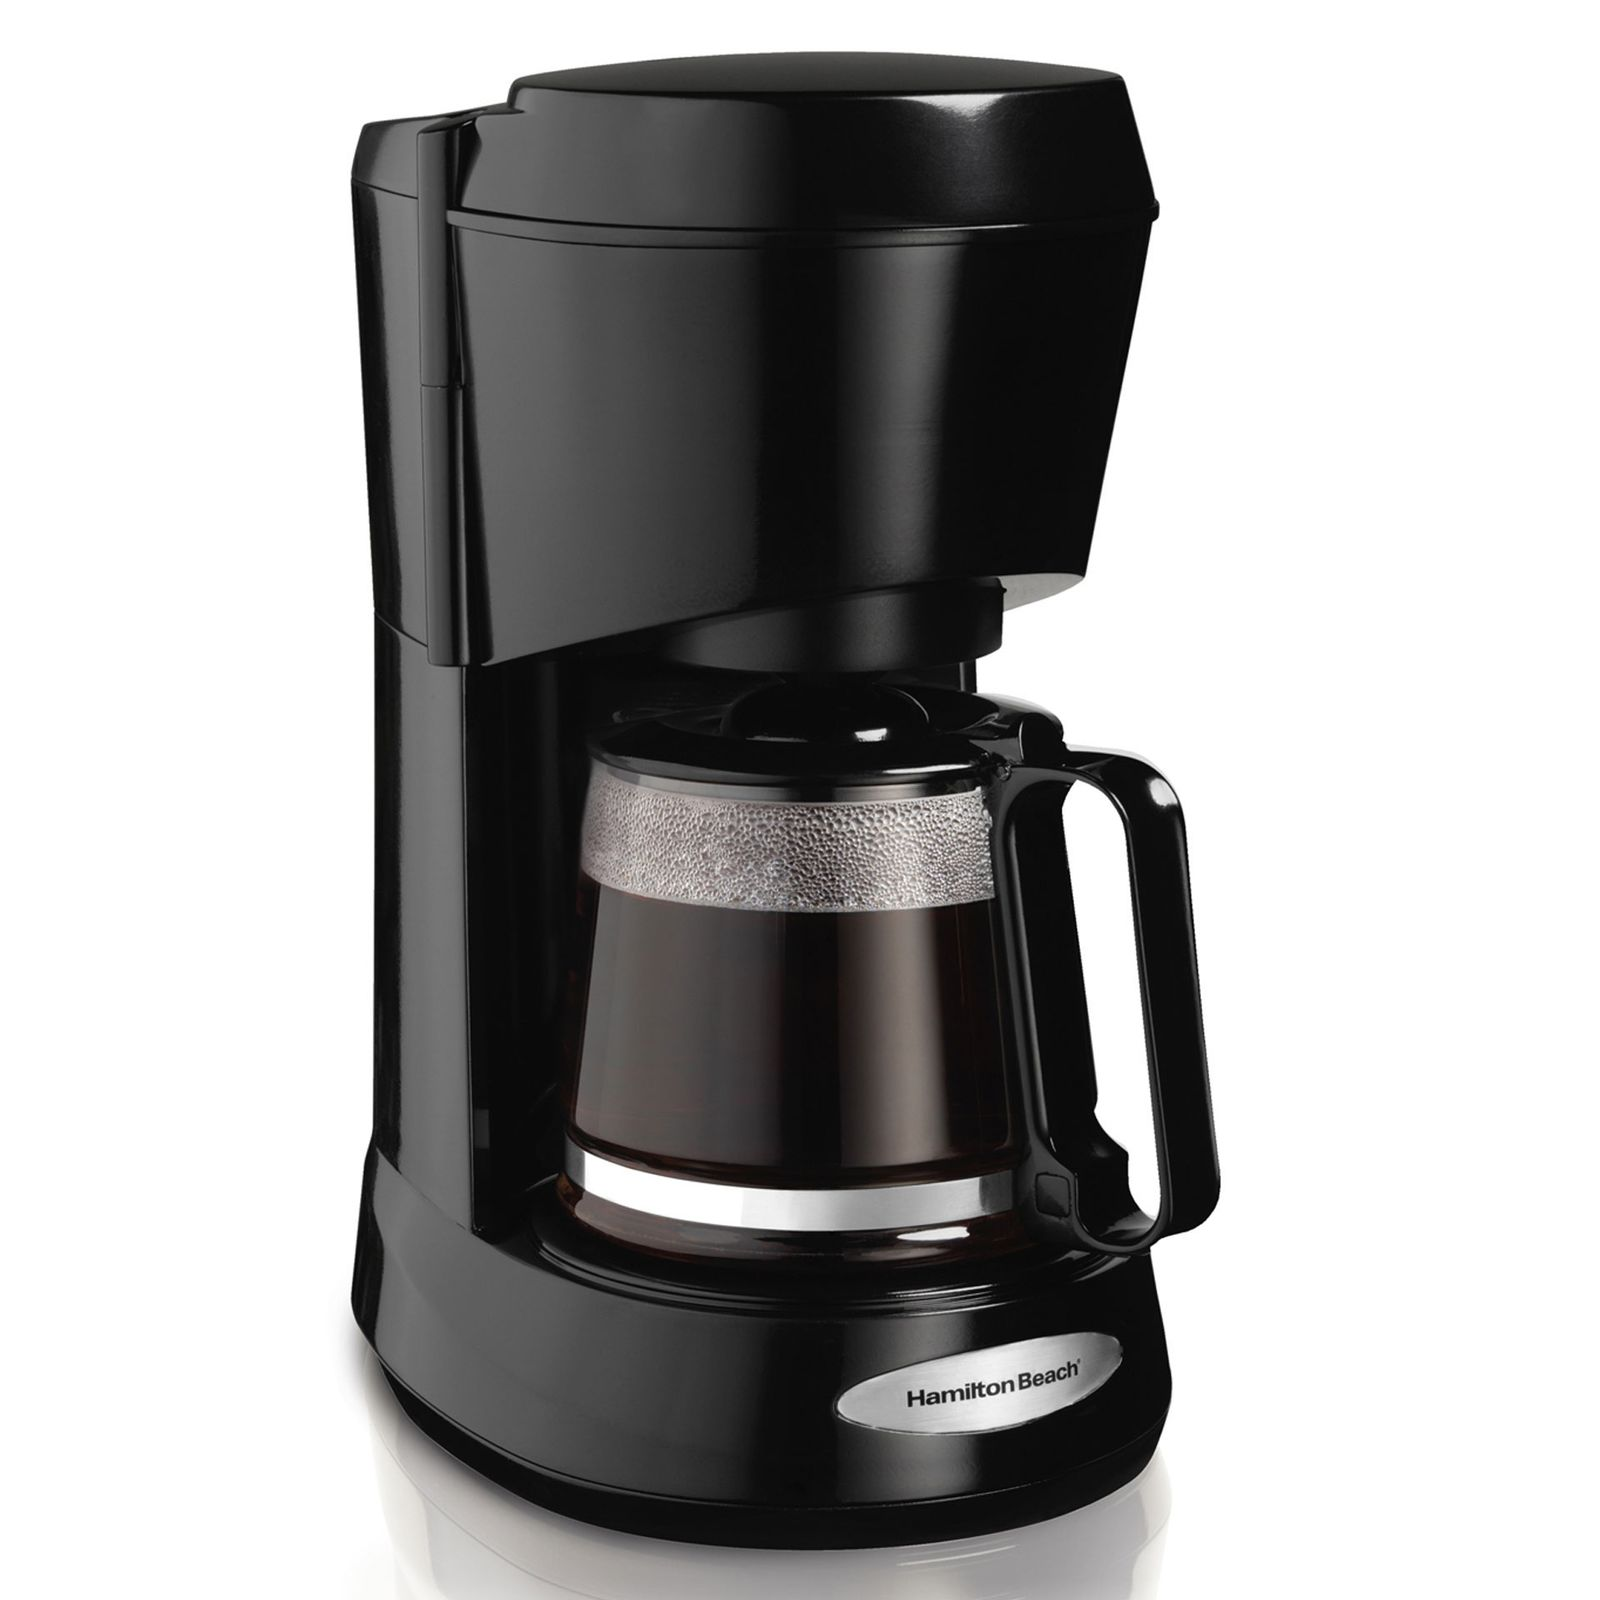 Hamilton beach 5 cup coffee maker 48136 review How to make coffee with a coffee maker